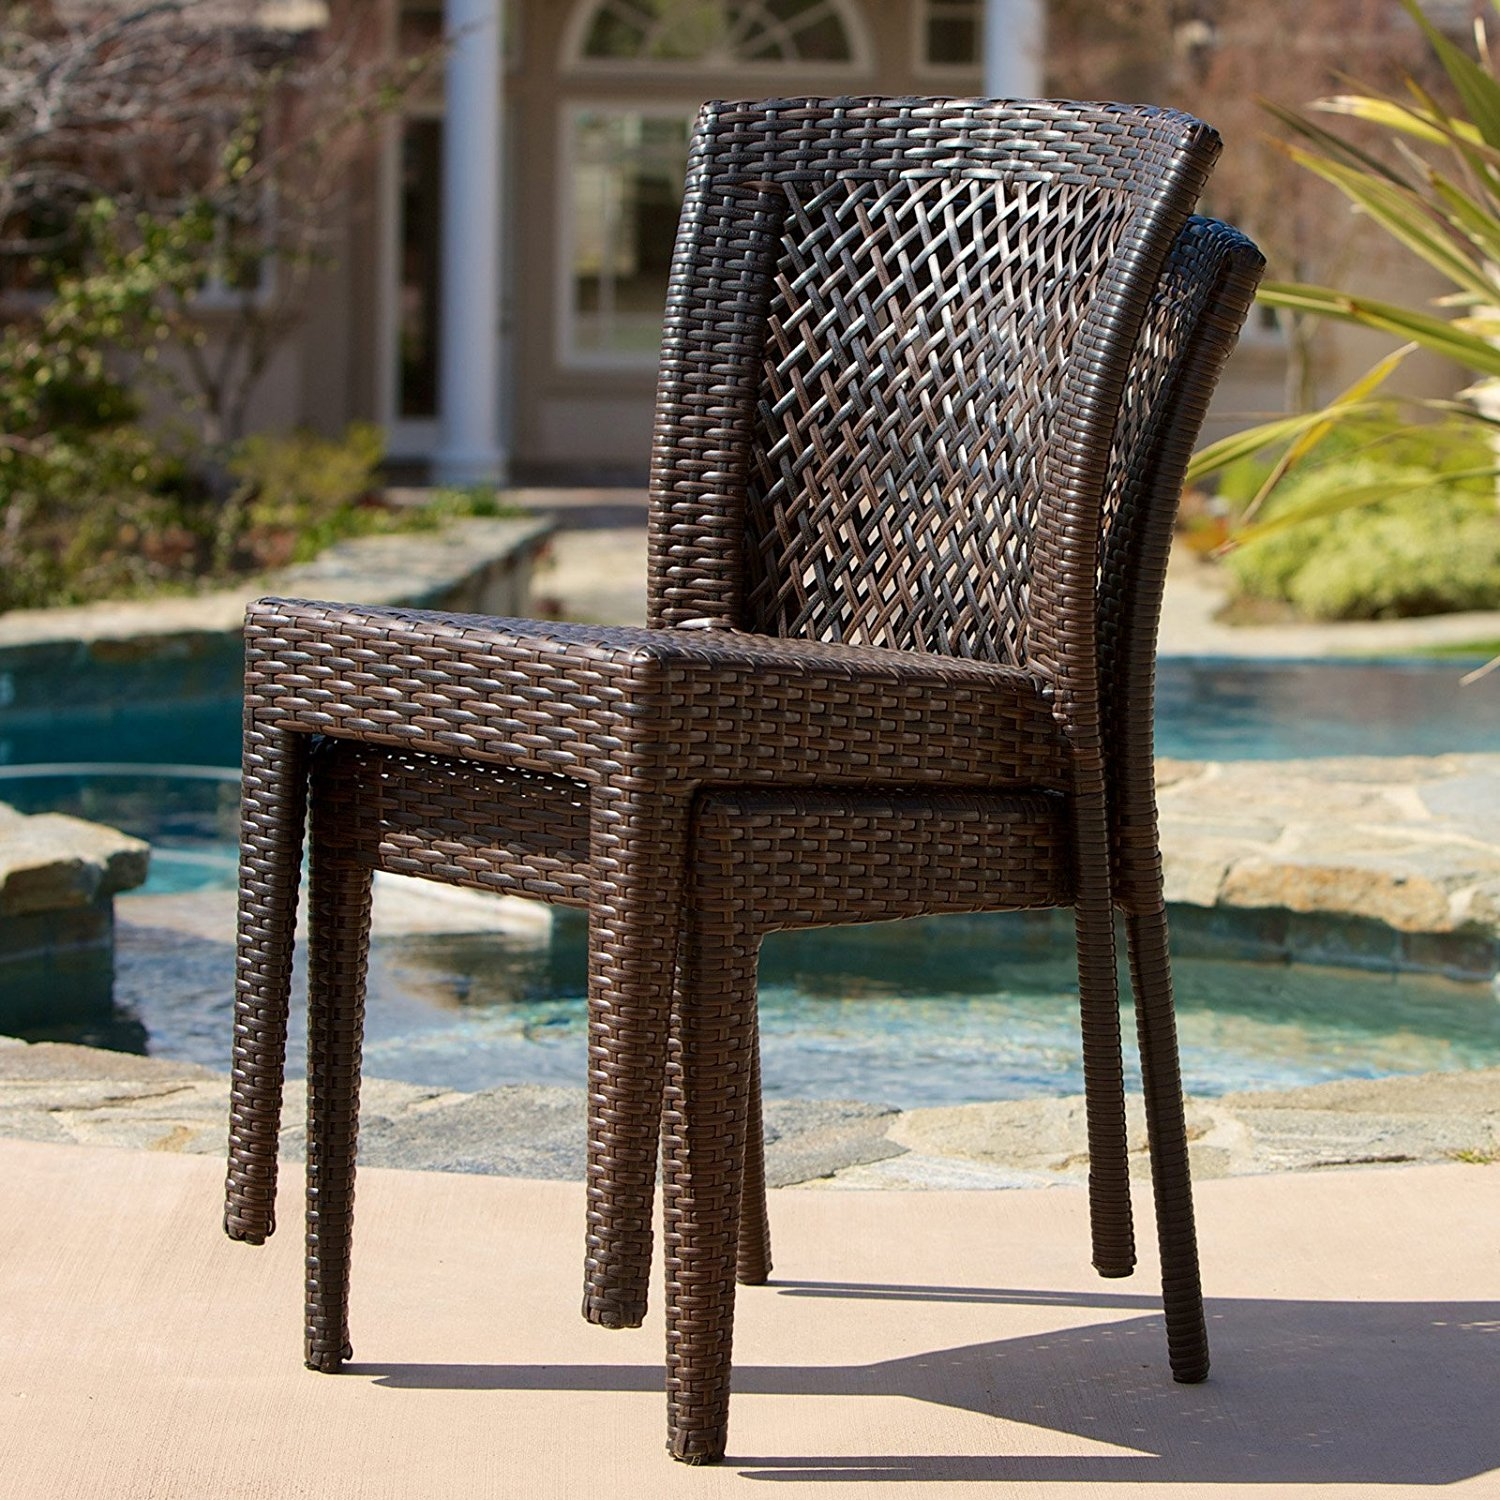 amazon.com : best selling dawn outdoor wicker chairs, set of 2 : patio UOJMCZE